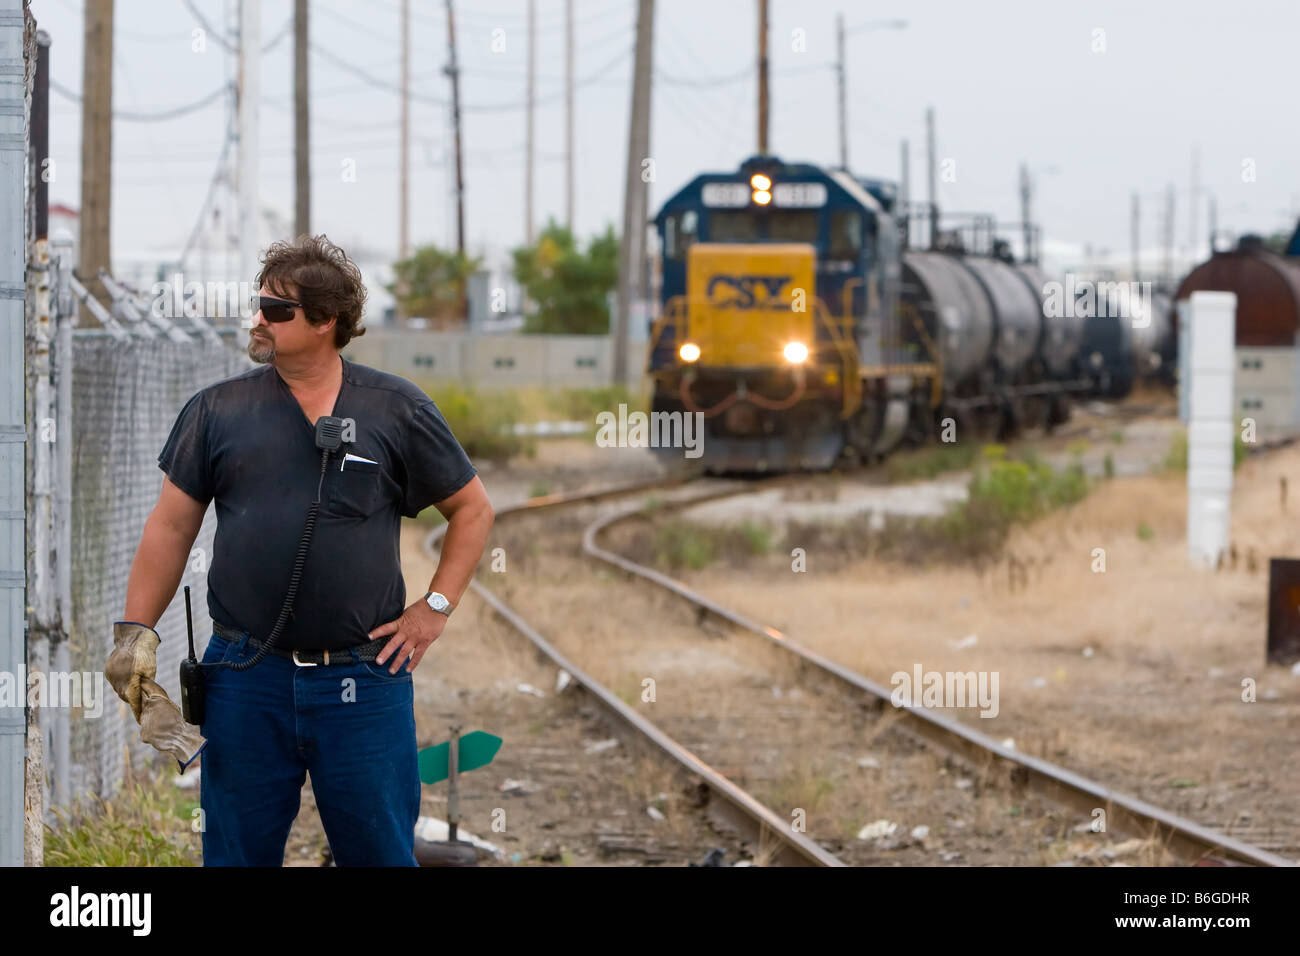 A conductor on a CSX freight train stands at a road crossing